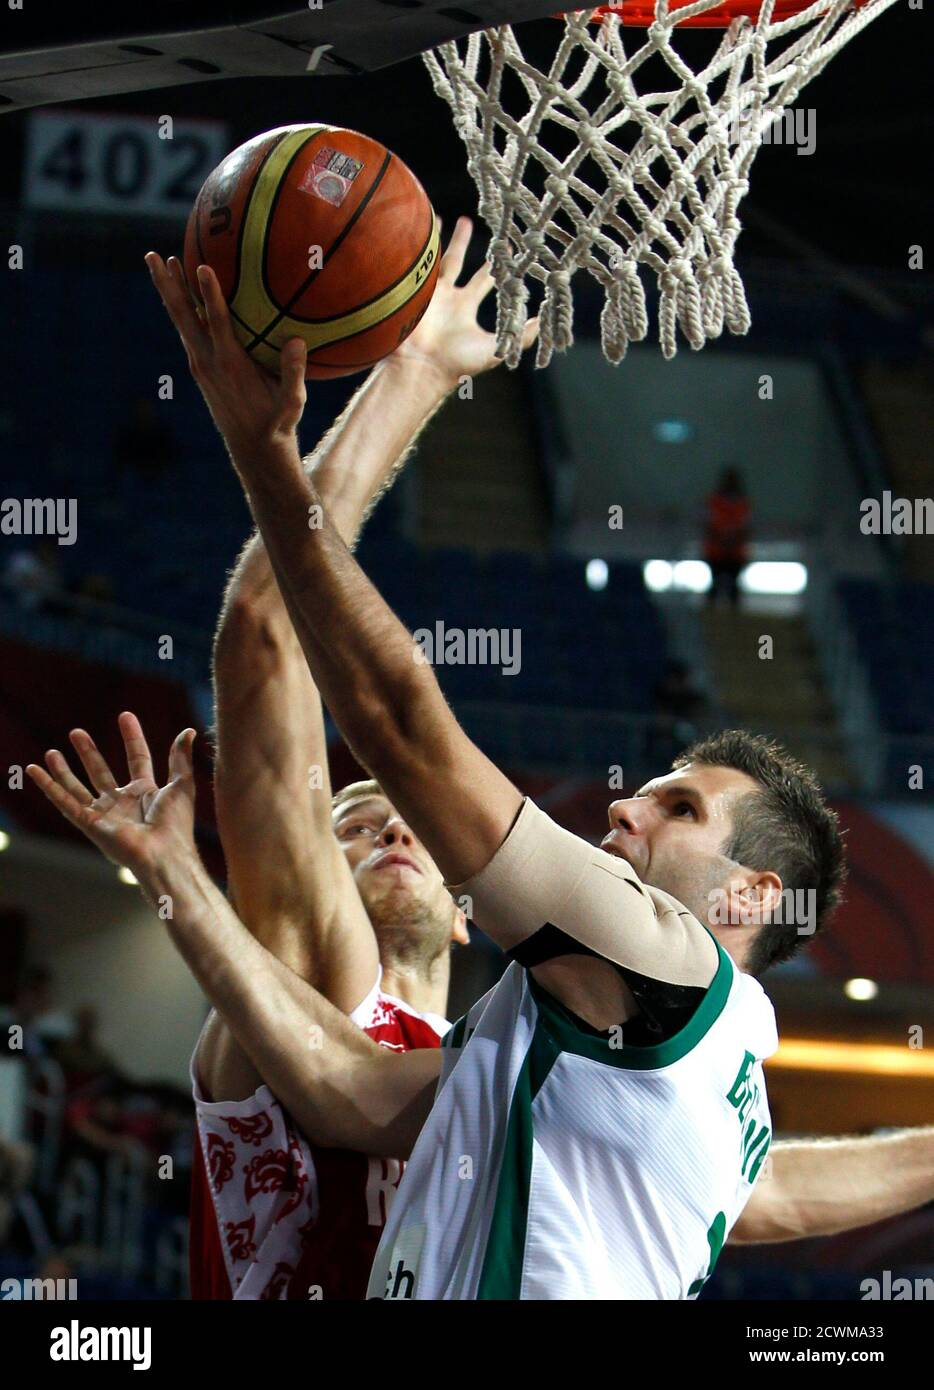 Slovenia's Sani Becirovic (R) goes up to the basket under pressure from Russia's Goran Jagodnik (L) during their FIBA Basketball World Championship game in Istanbul September 11, 2010.                            REUTERS/Mark Blinch  (TURKEY  - Tags: SPORT BASKETBALL) Foto de stock